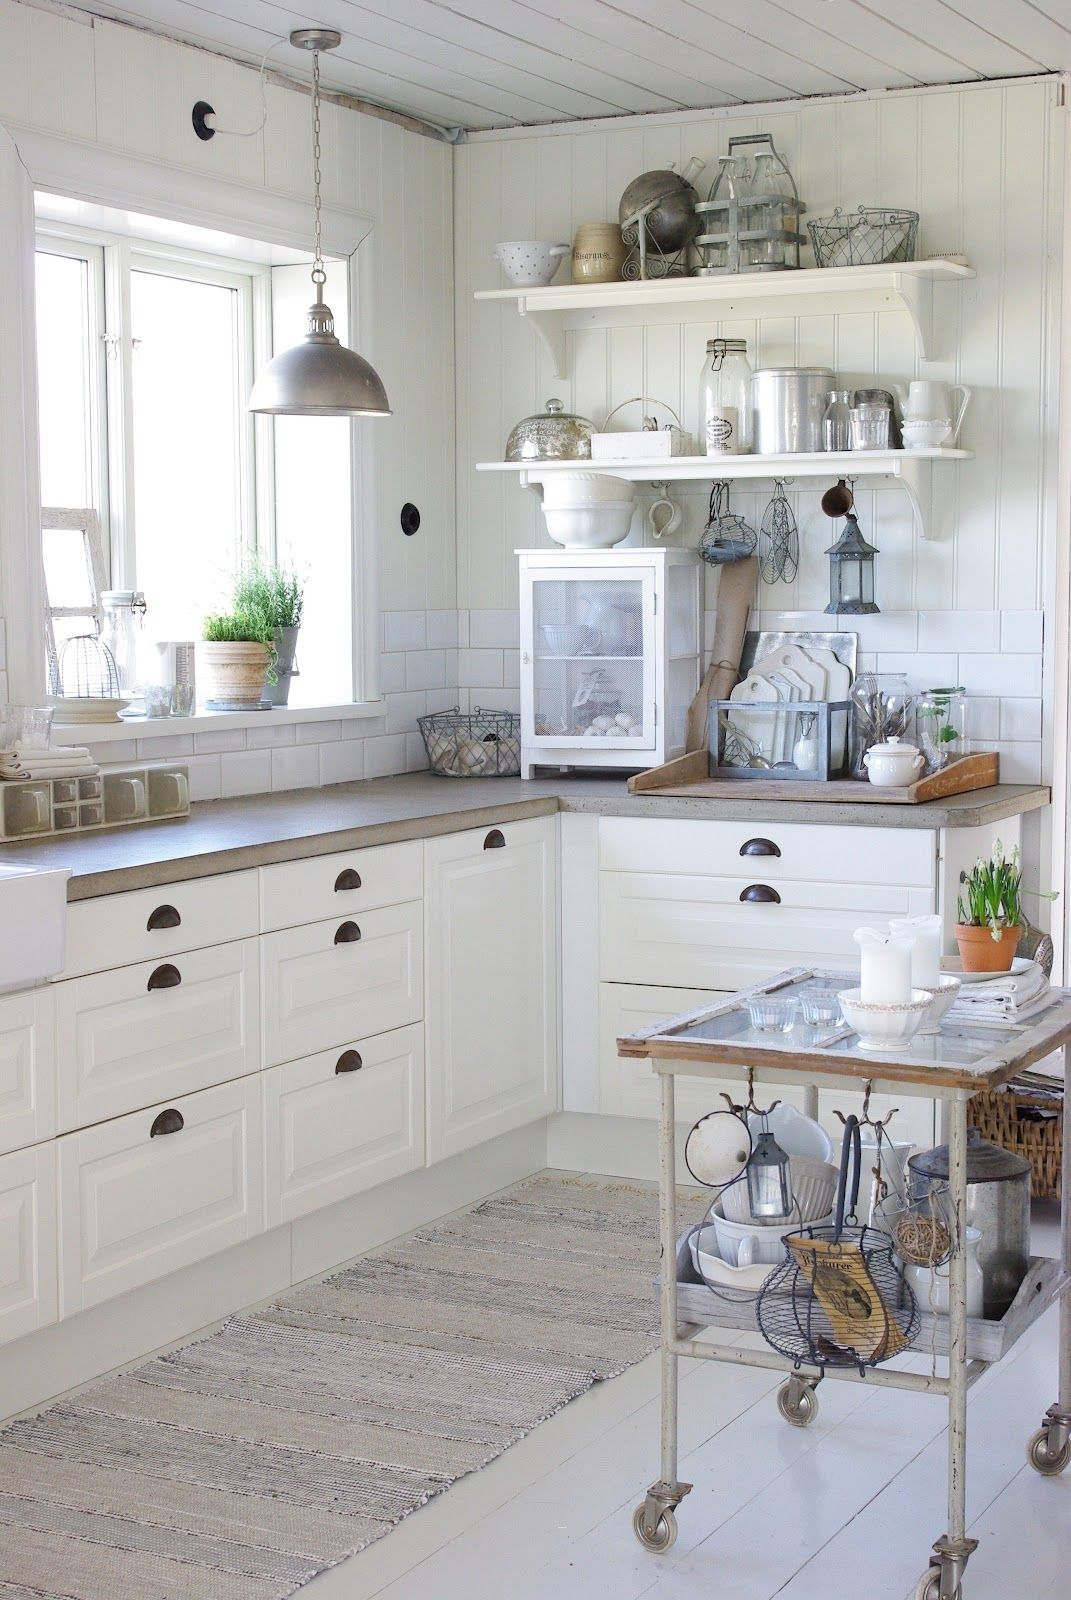 Concrete countertops and subway tile Country kitchen